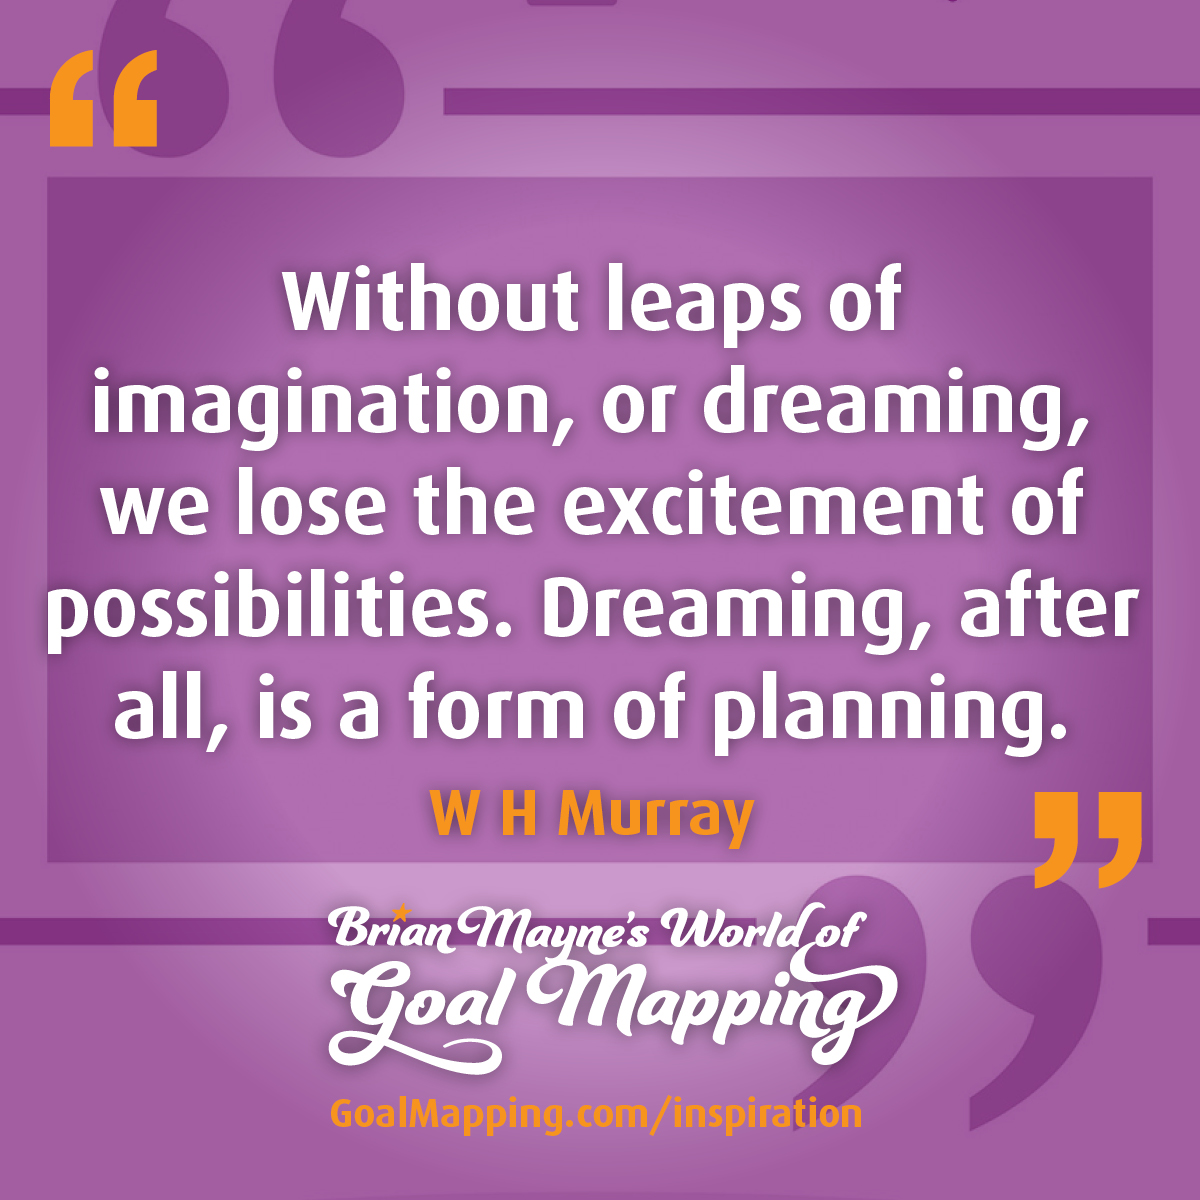 """""""Without leaps of imagination, or dreaming, we lose the excitement of possibilities. Dreaming, after all, is a form of planning."""" Gloria Steinem"""